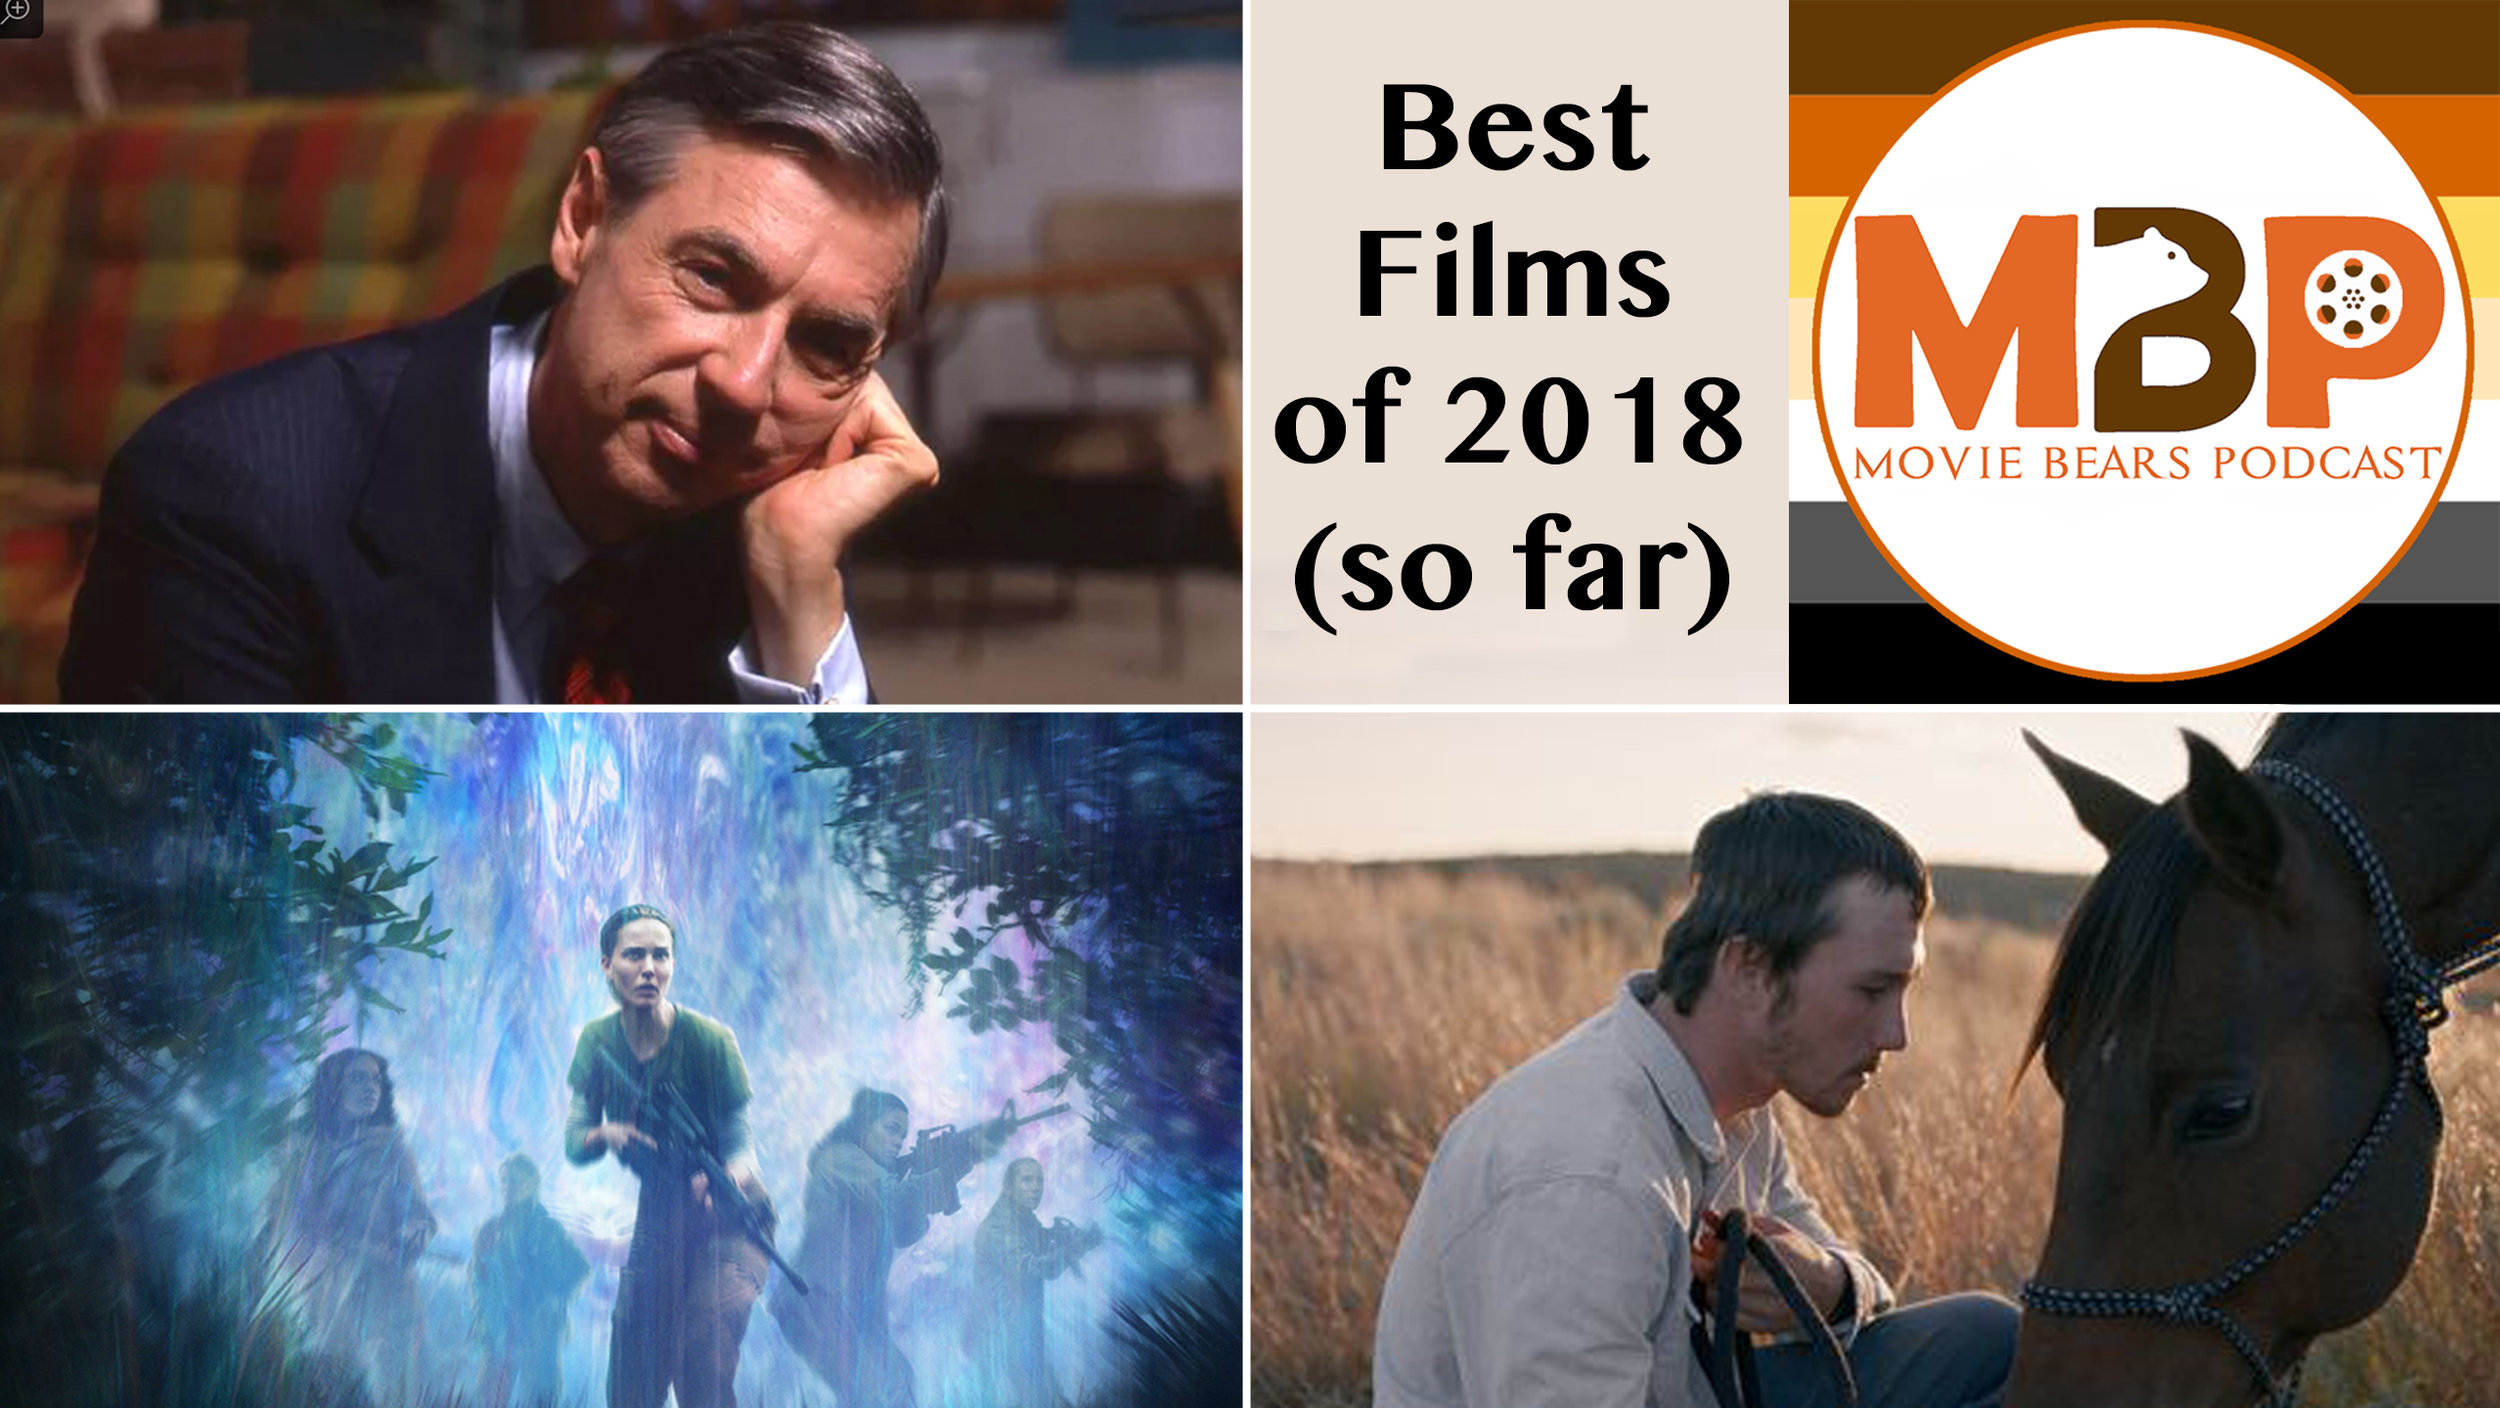 MBP e287 - The Best Films of 2018 (So Far) (7/3/18)     Whoa! We're halfway through 2018 already - where did the time go? - I guess this means thats it's time for our midyear rankings! On this episode, we each share our favorite 3 films of 2018 (so far) and what we love about them. Contact us at cast@moviebearspodcast.com to share your top 3 of the year so far and maybe we'll highlight them on an upcoming episode.